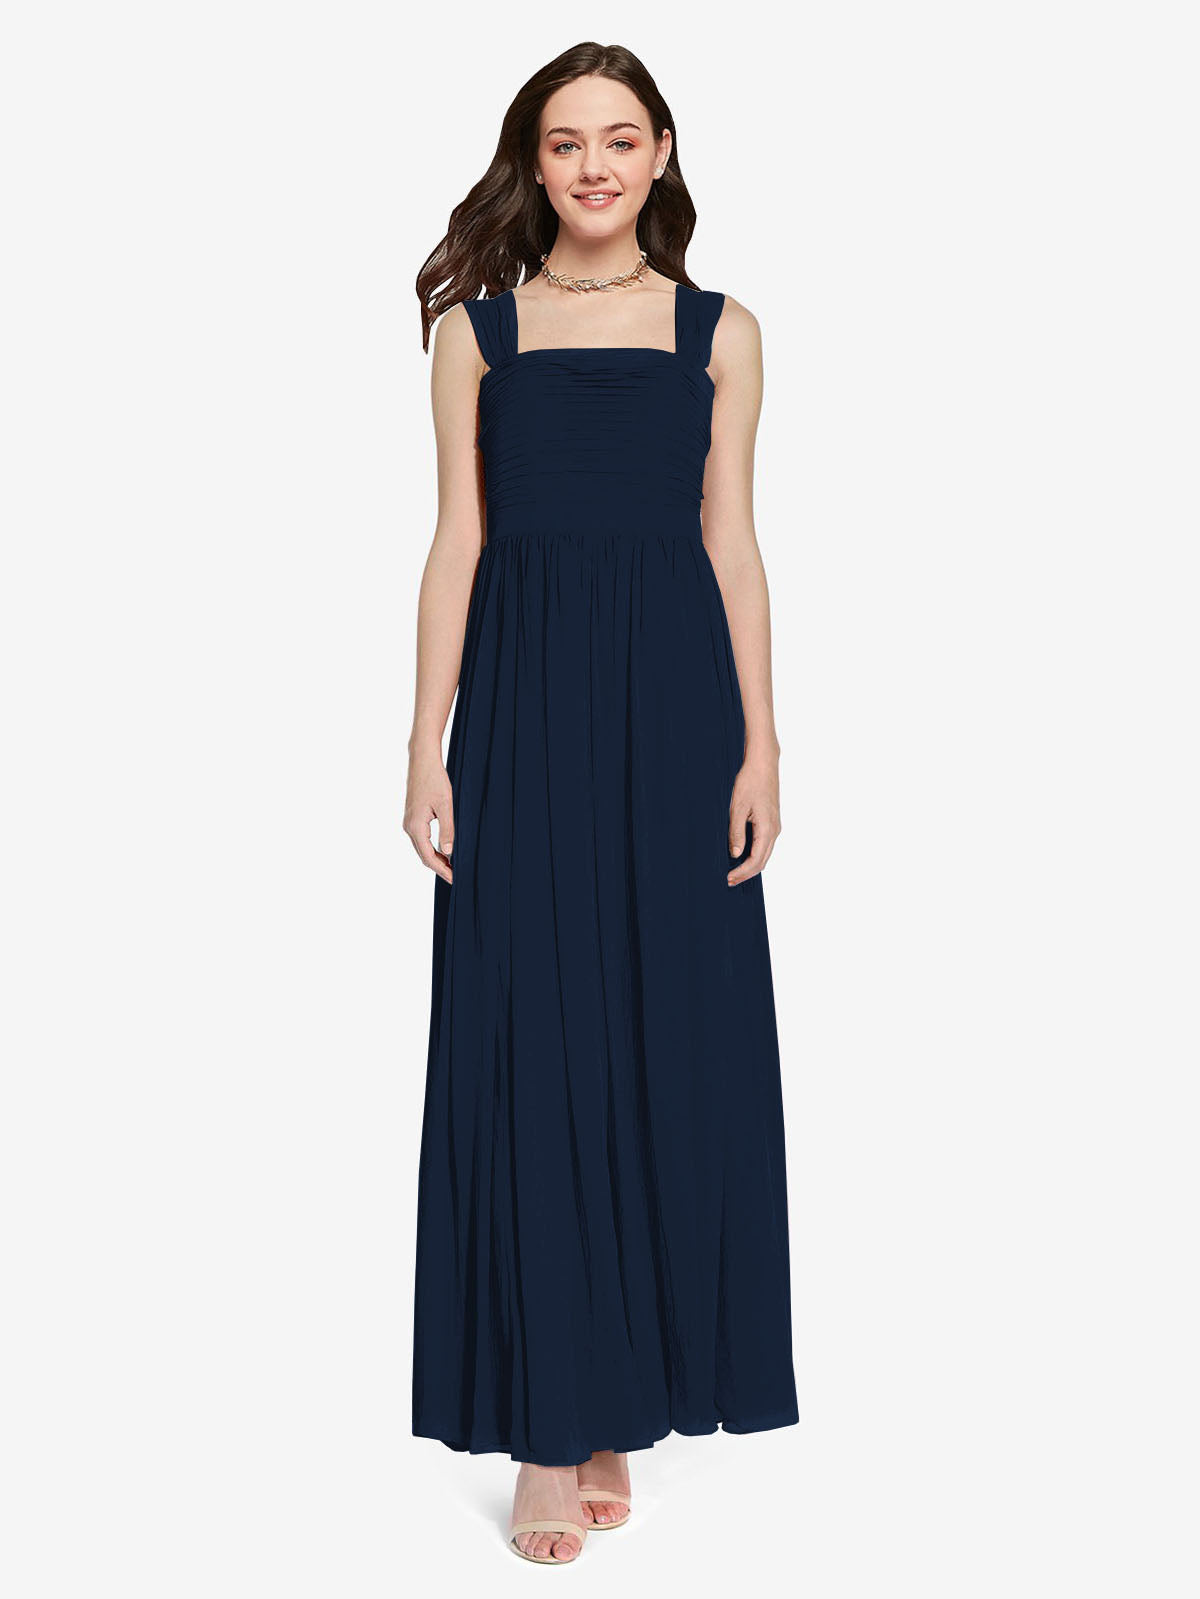 Long A-Line Square Sleeveless Dark Navy Chiffon Bridesmaid Dress Aldridge